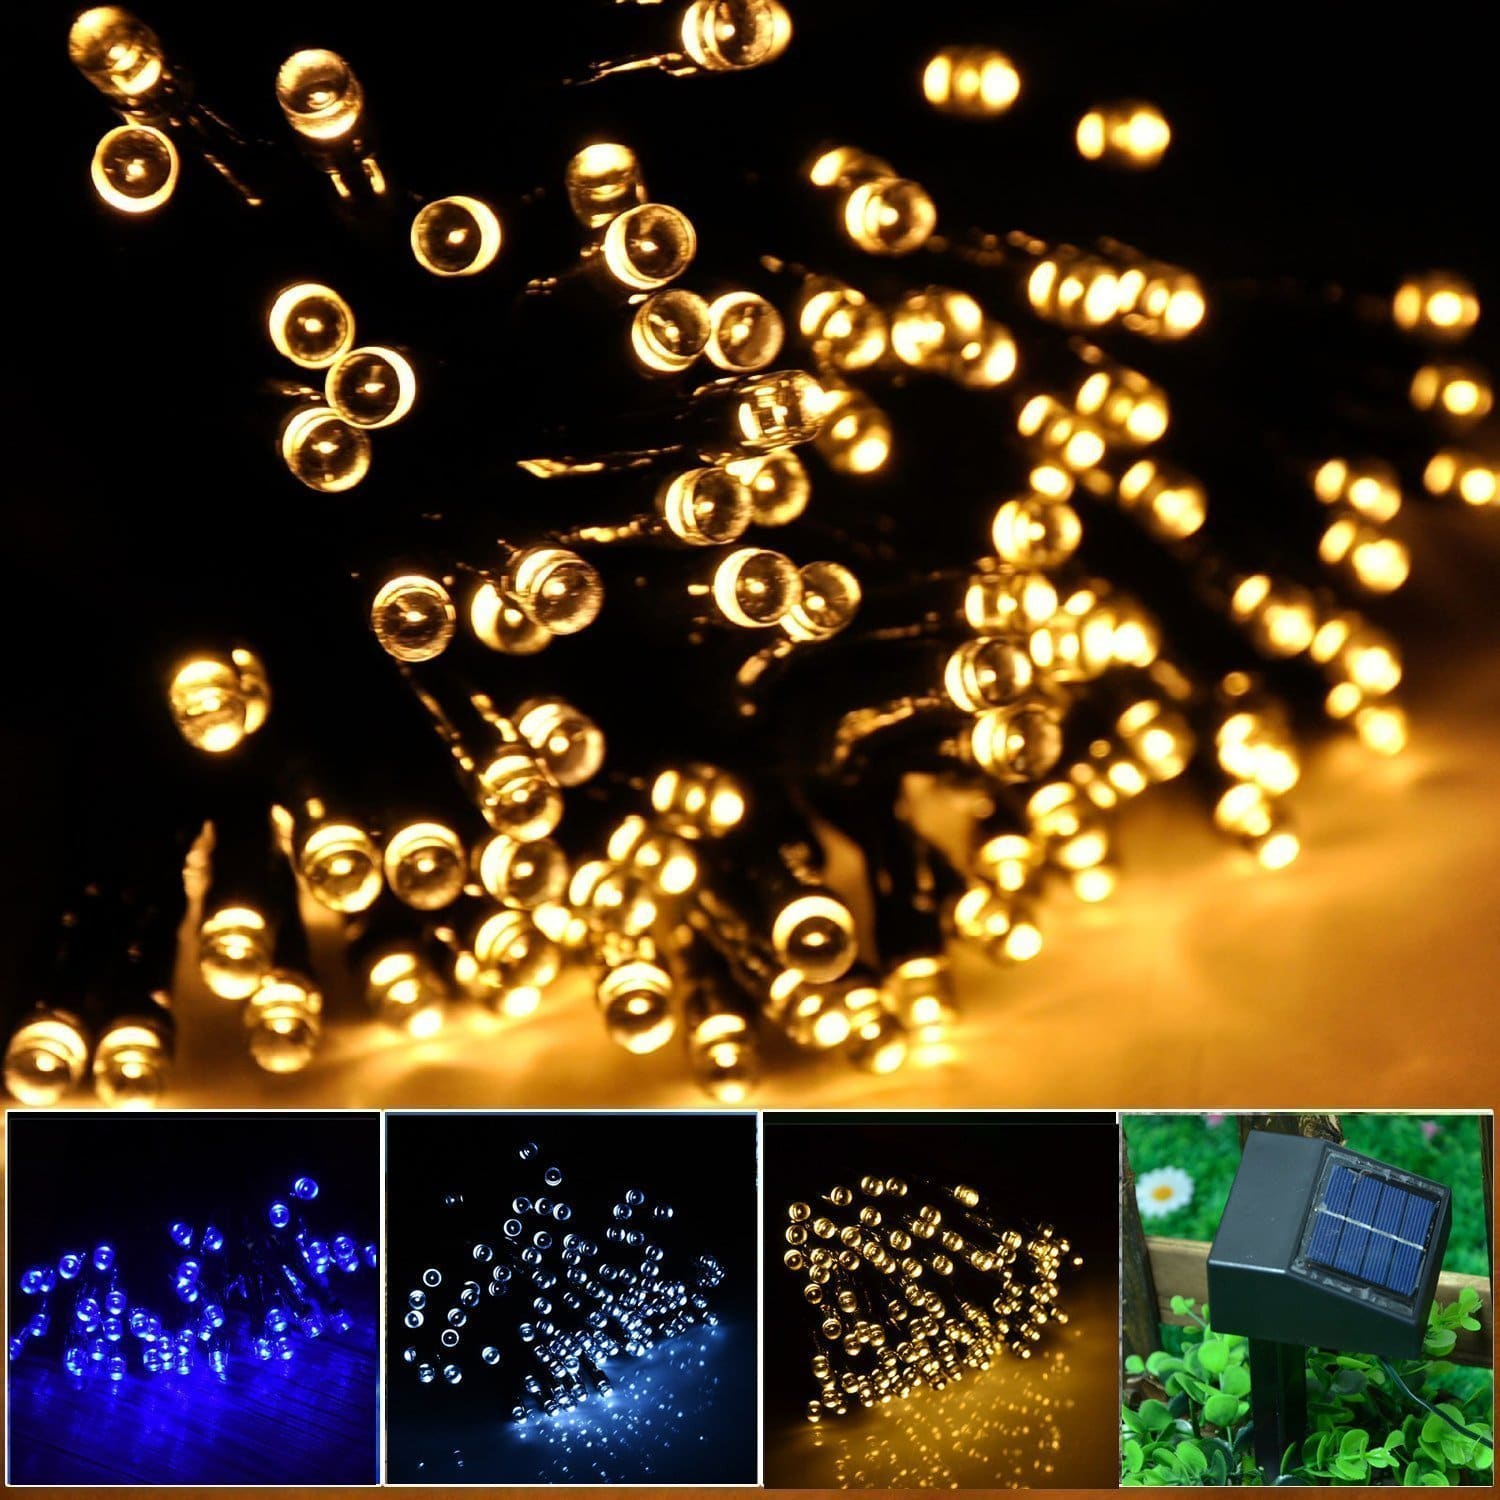 Outdoor christmas lights new and incredible innovations for the inst solar powered led string light ambiance lighting 545ft 17m 100 led solar aloadofball